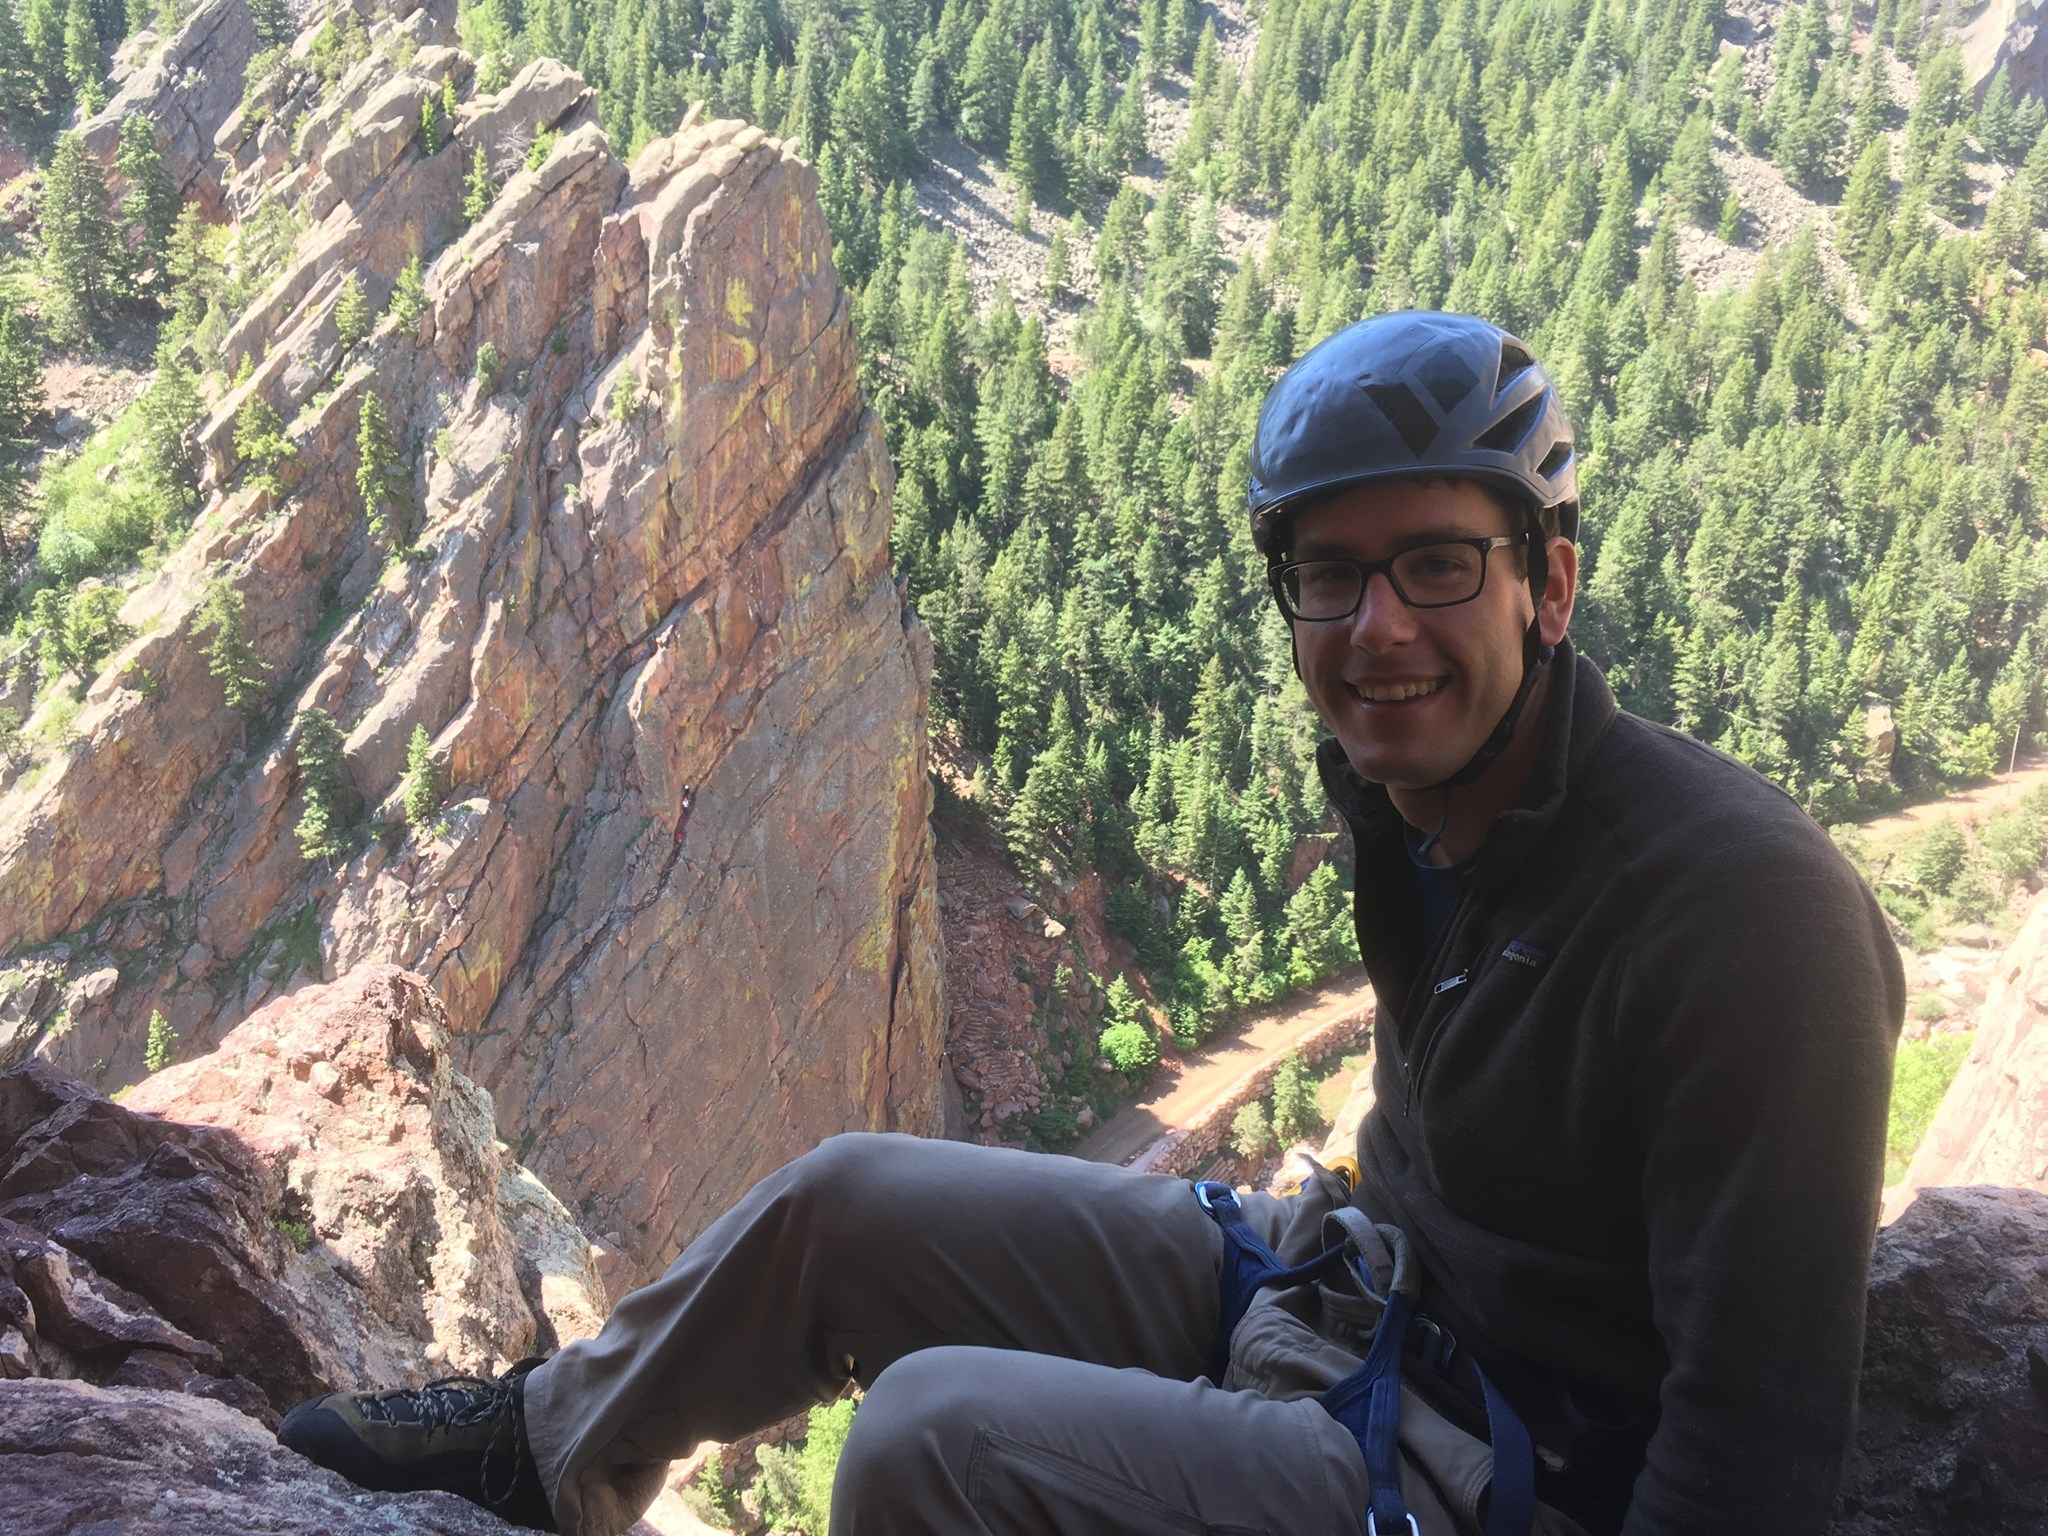 Escaping the summer heat by finding the only shade in Eldorado Canyon